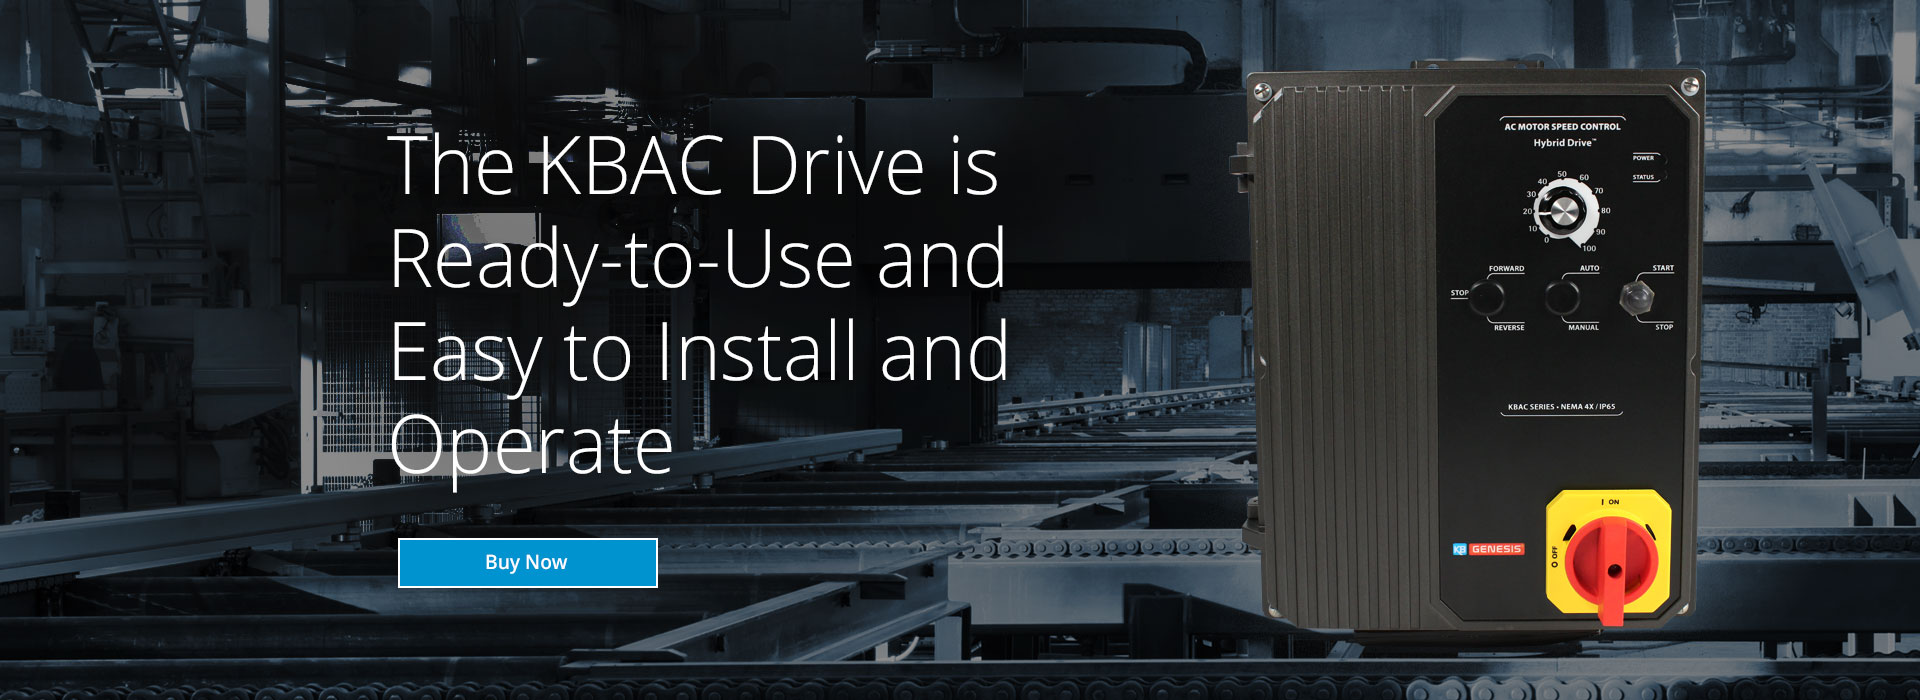 The KBAC Drive is Ready-to-Use and Easy to Install and Operate